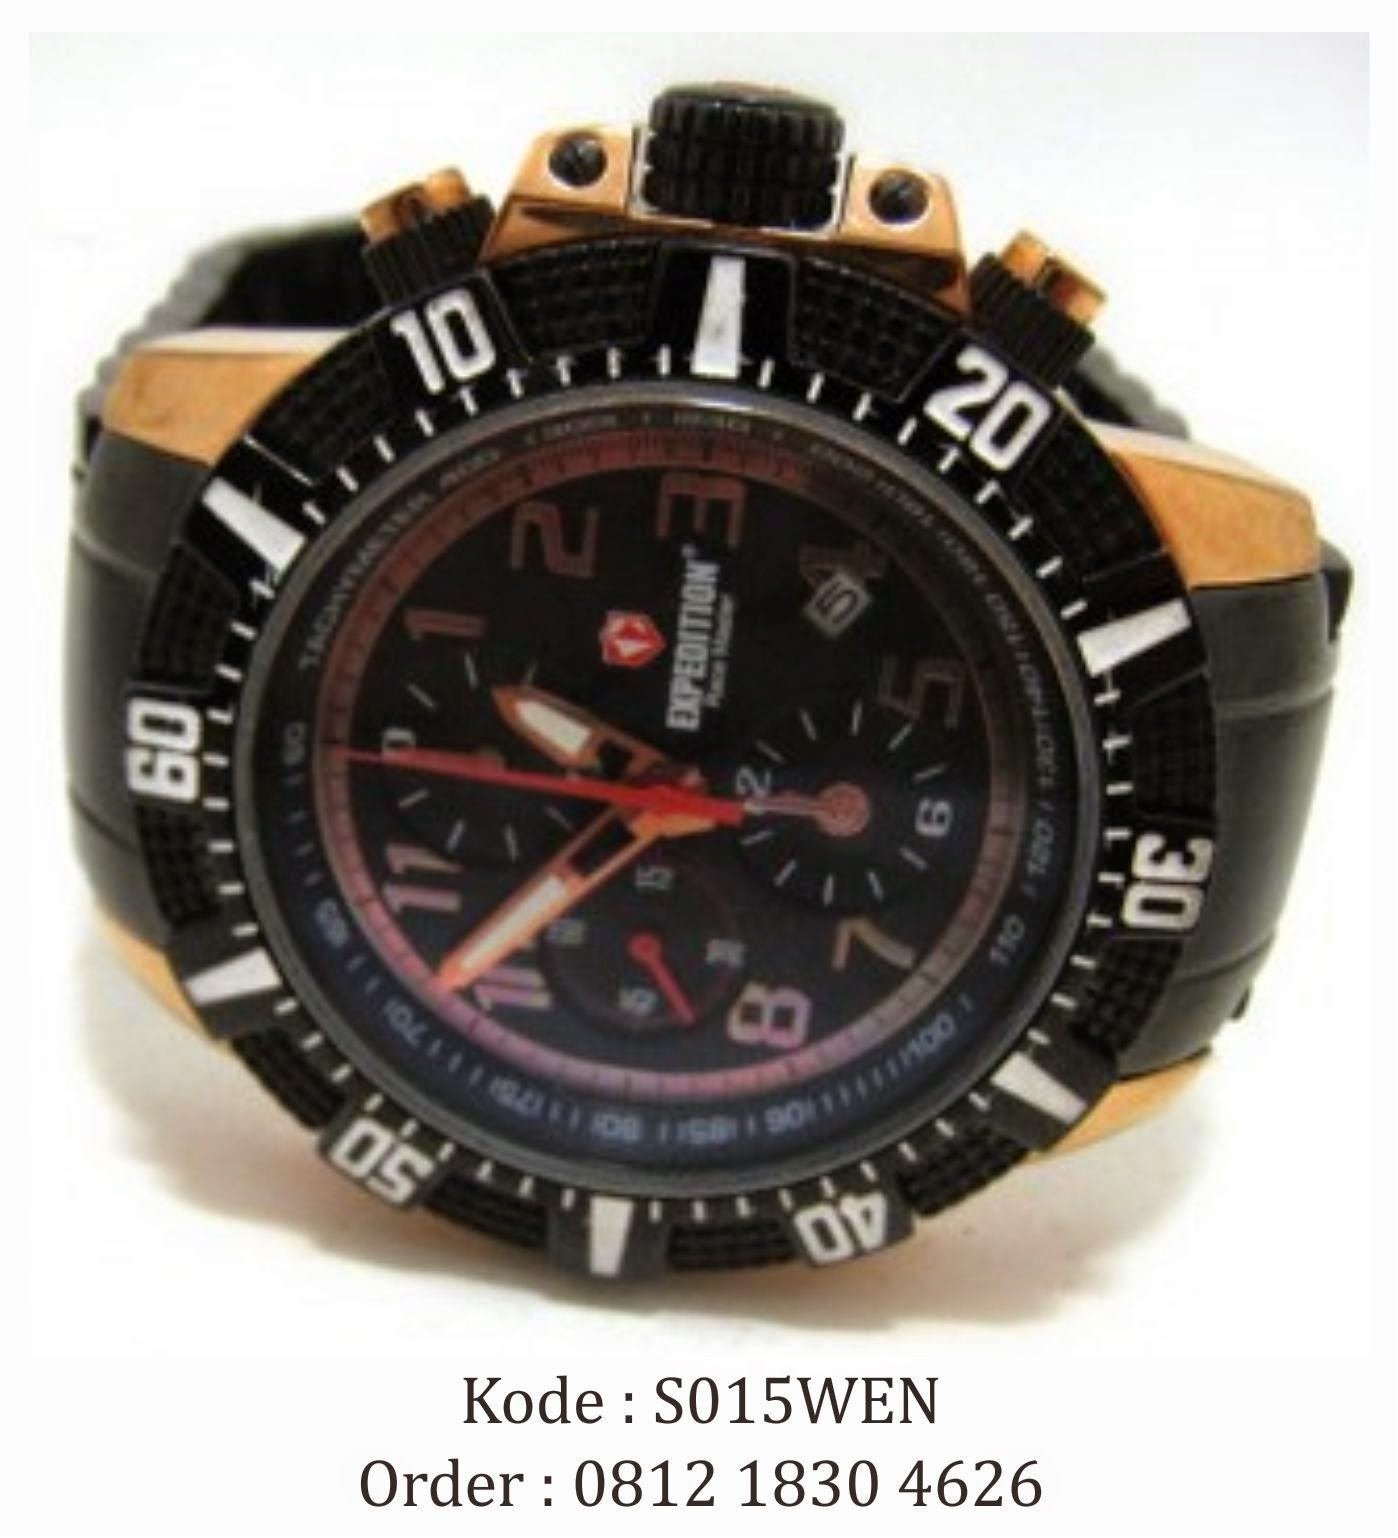 0812 1830 4626 | Jual Jam Tangan Swiss Expedition SE 6107 M